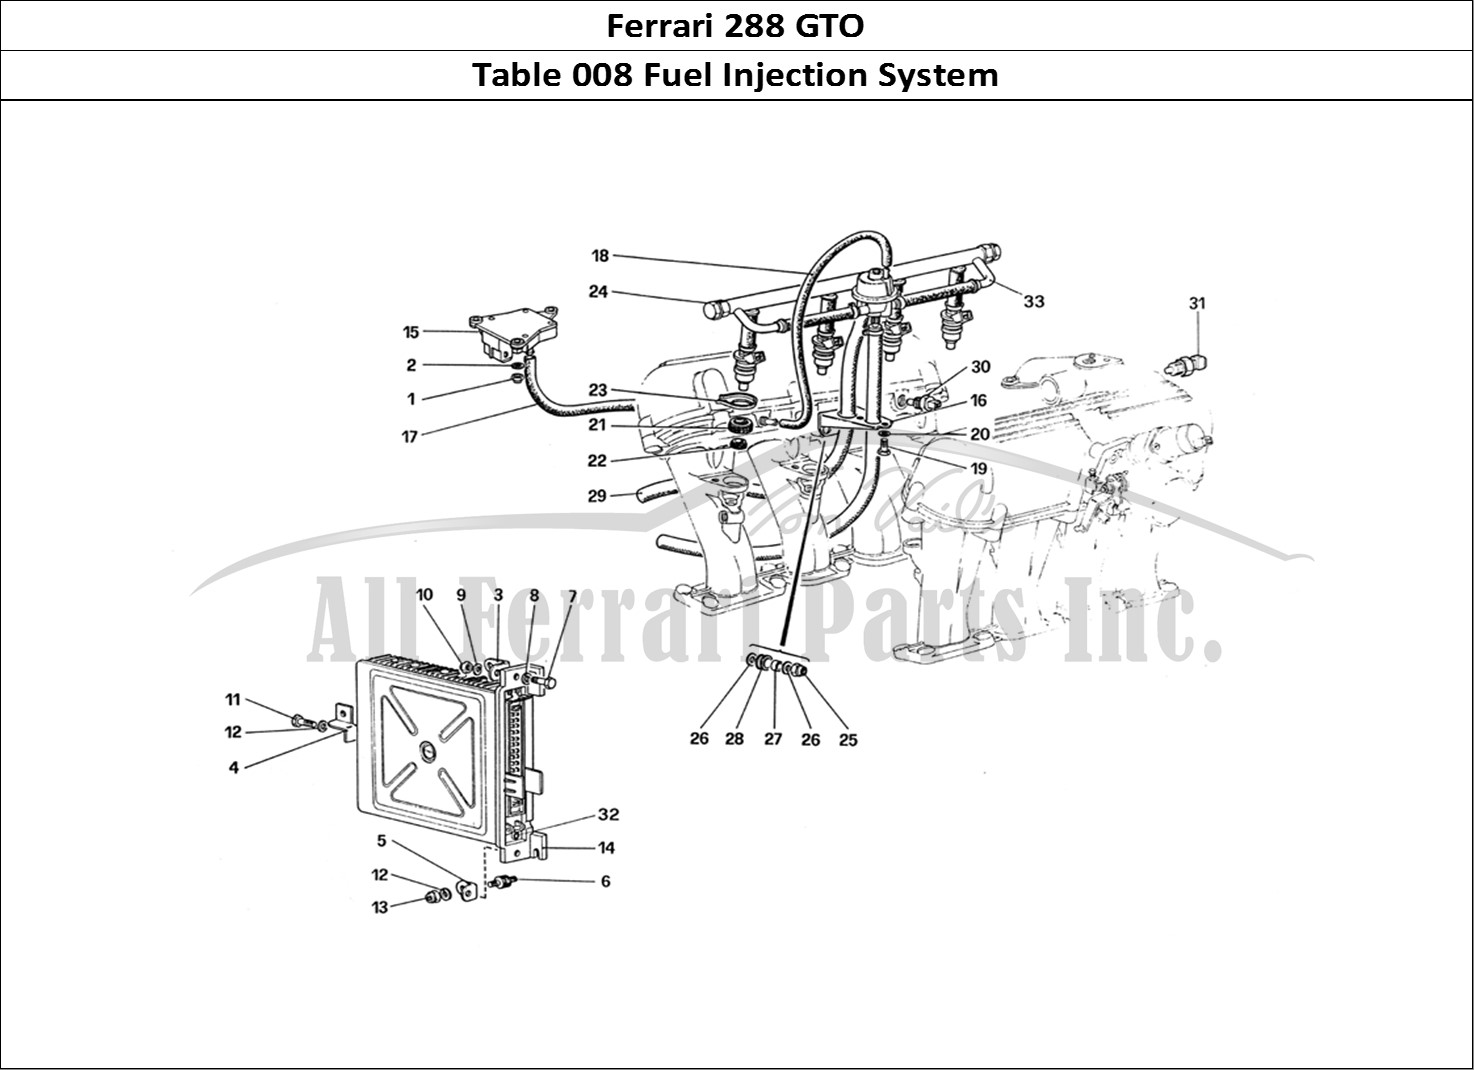 Buy original Ferrari 288 GTO 008 Fuel Injection System